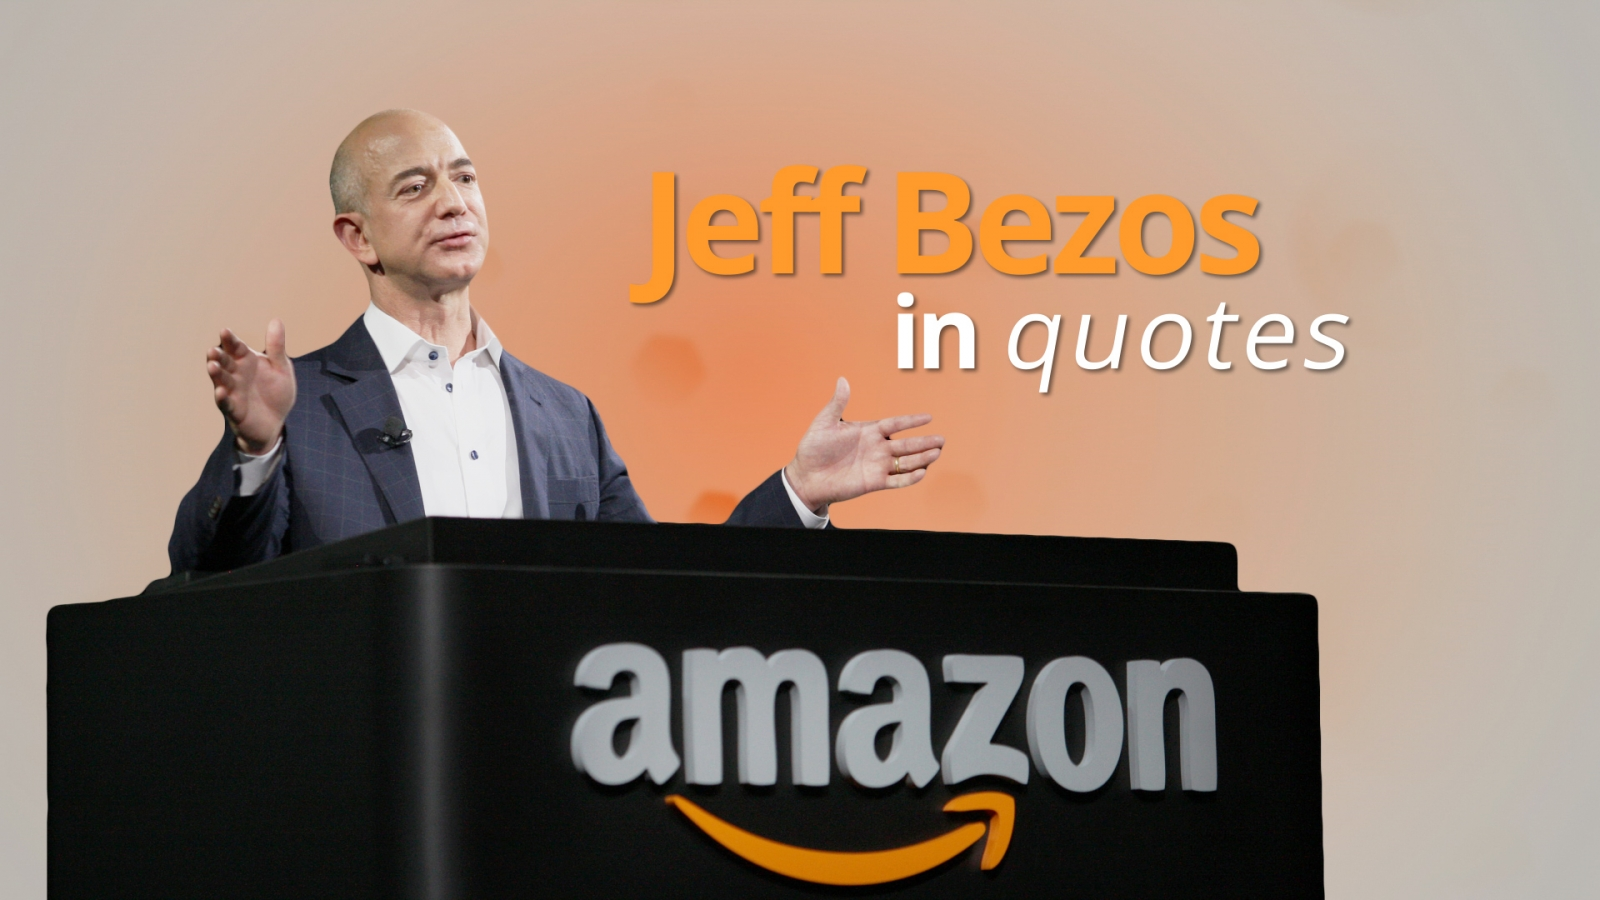 How Much Is Amazon Founder Jeff Bezos Worth